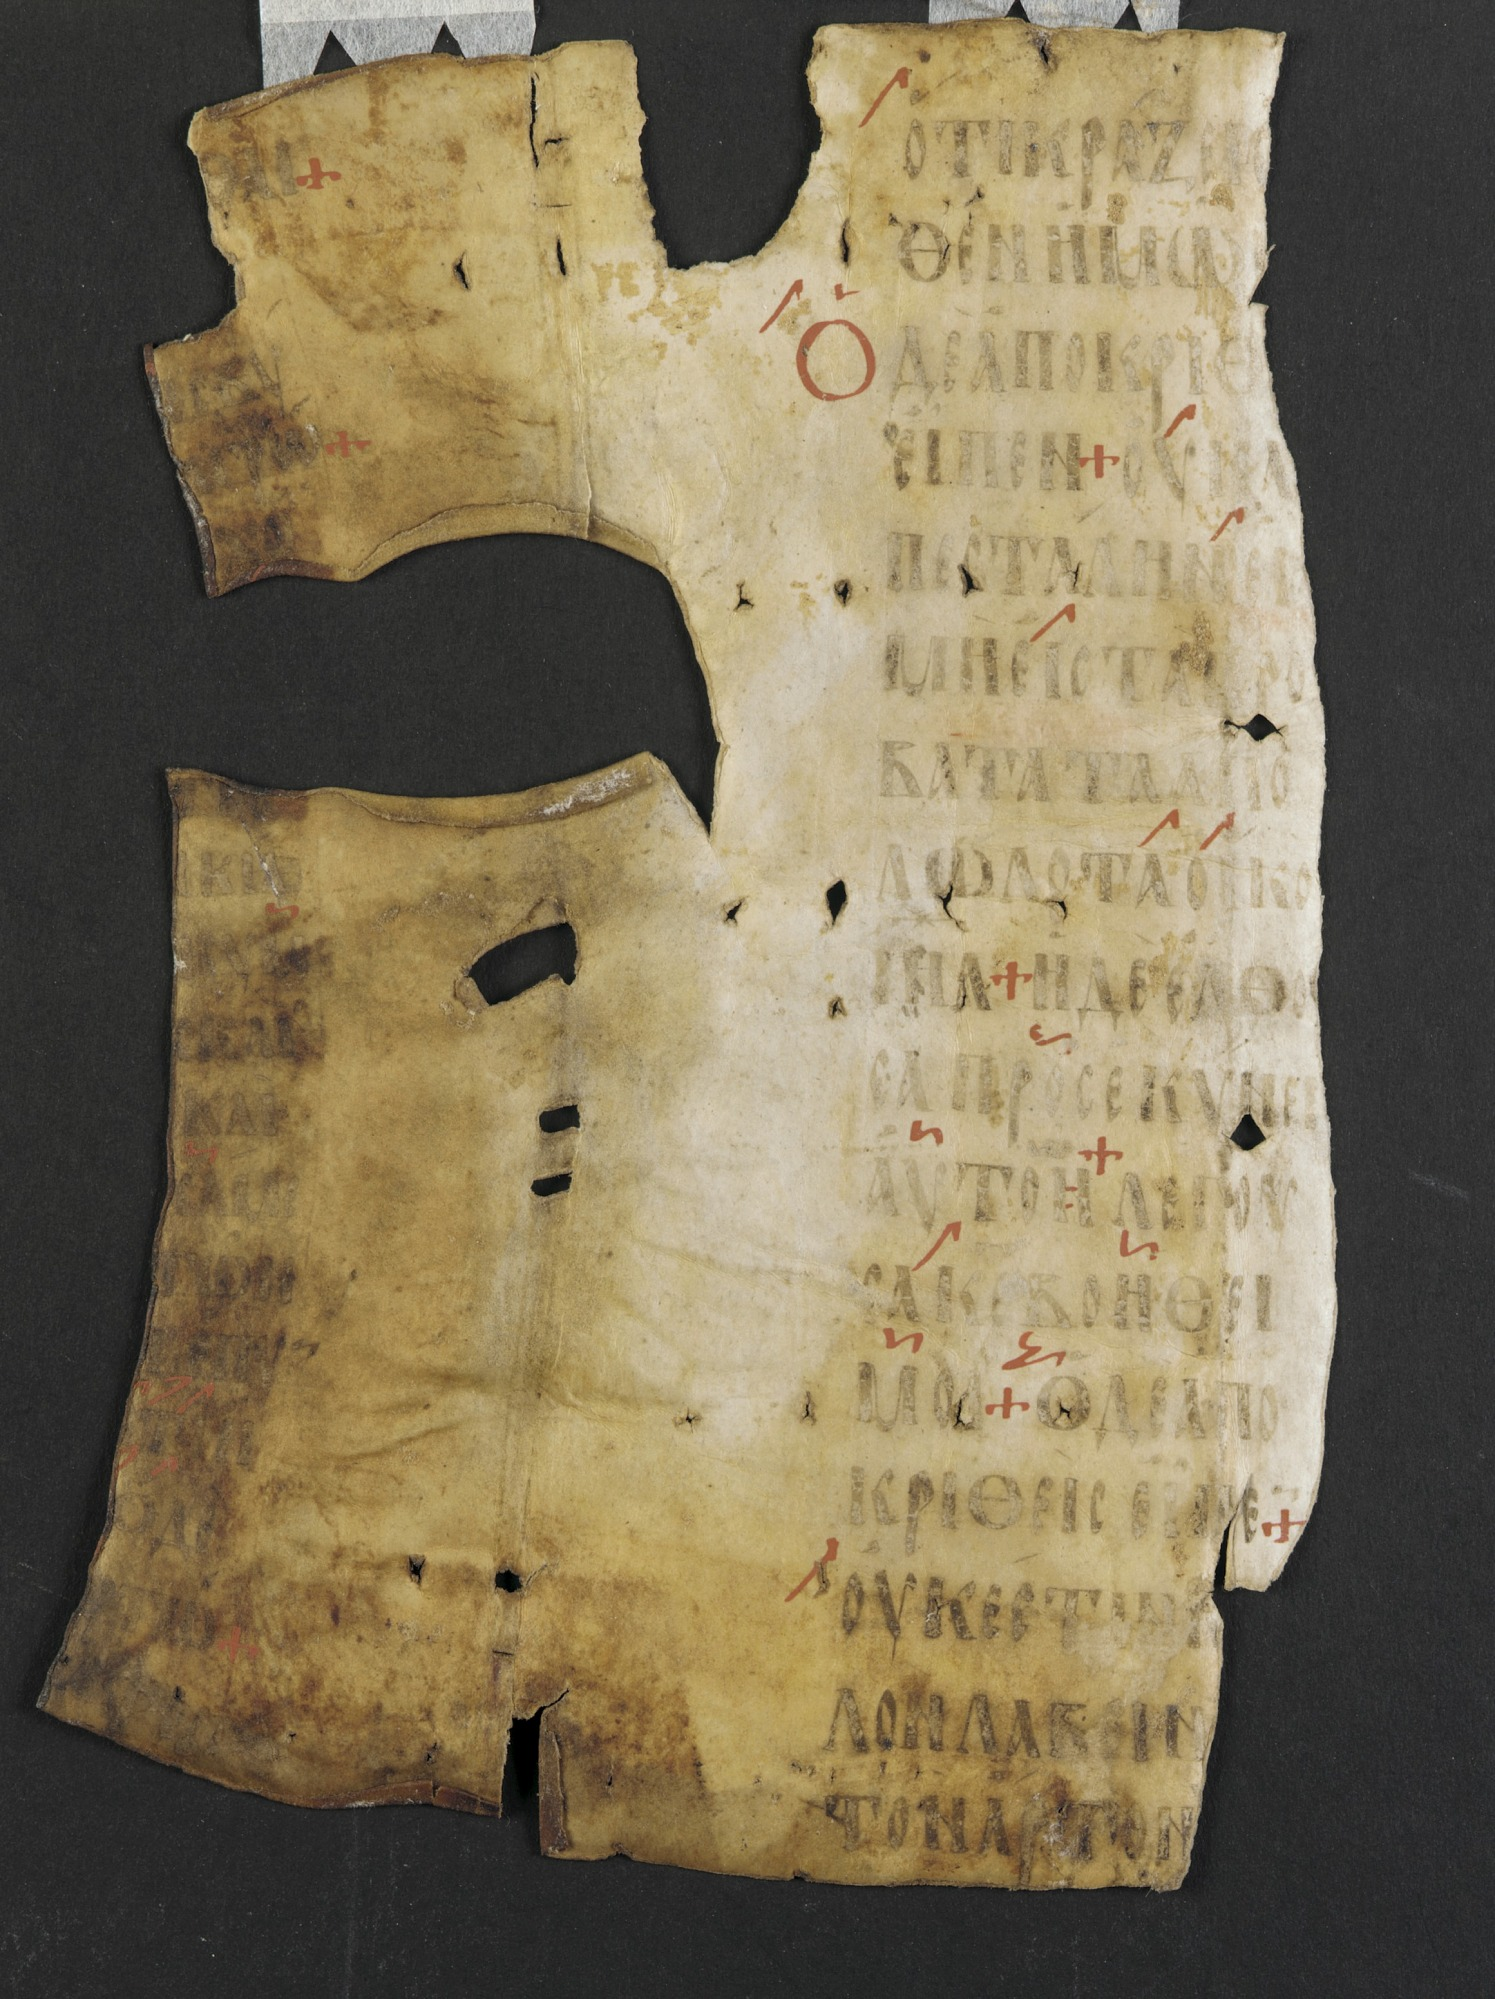 Fragment of two conjugate leaves from a Service-book: recto, St. Matthew, XV, 23-26; verso, St. Luke, XVIII, 11-13